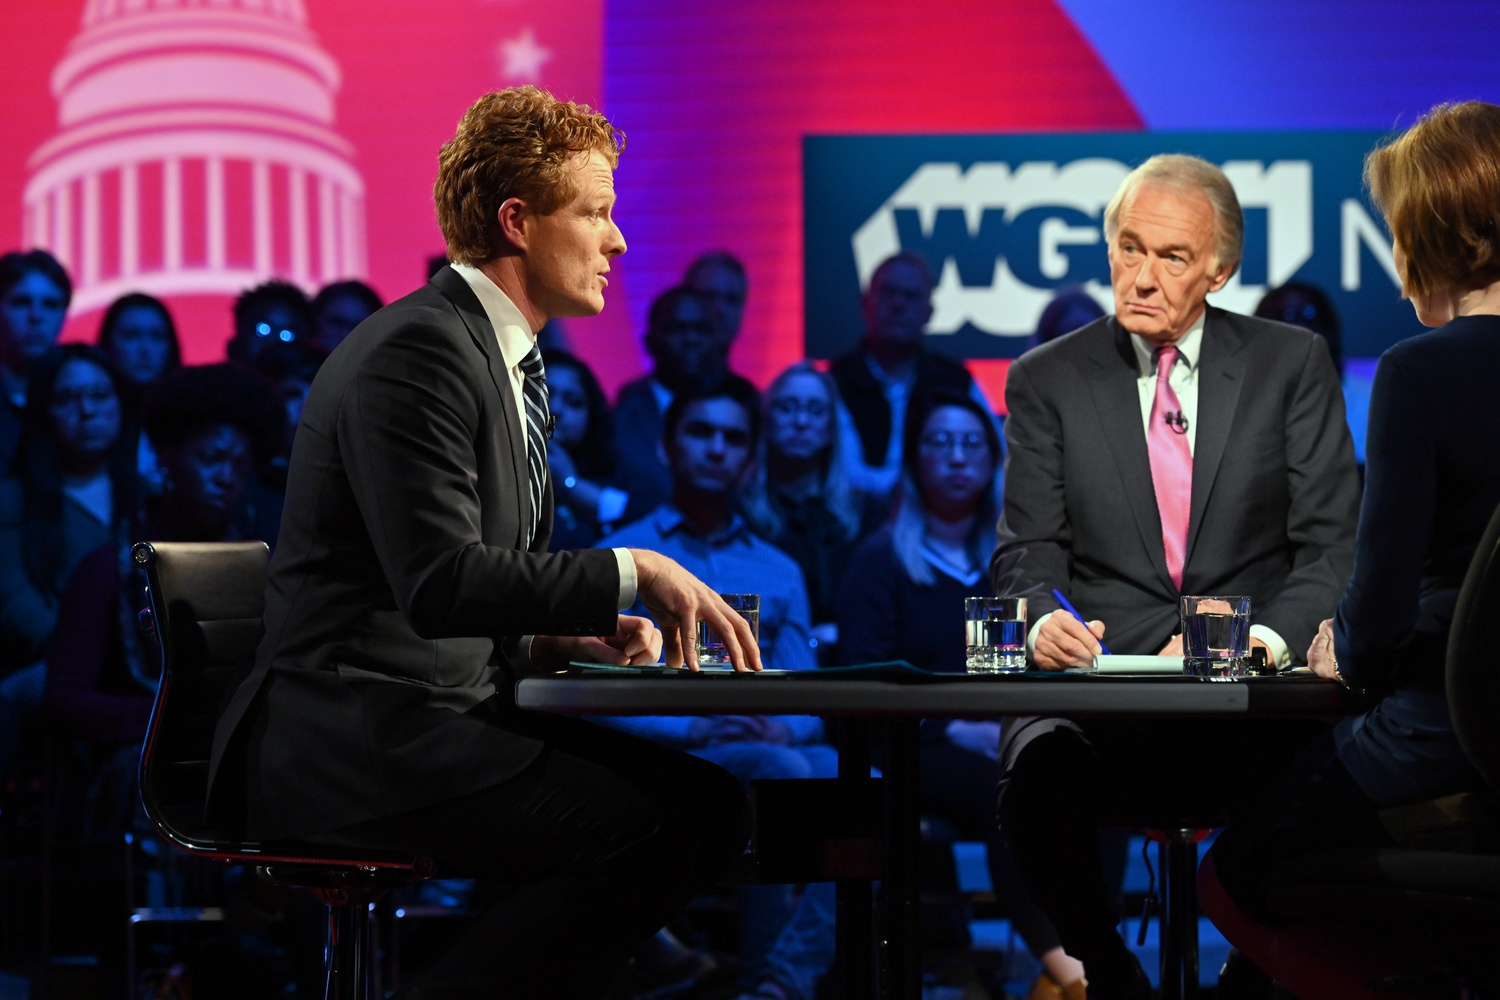 U.S. Representative Joseph P. Kennedy III (D-Mass.) and incumbent Senator Edward J. Markey (D-Mass.) debate at WGBH Tuesday.